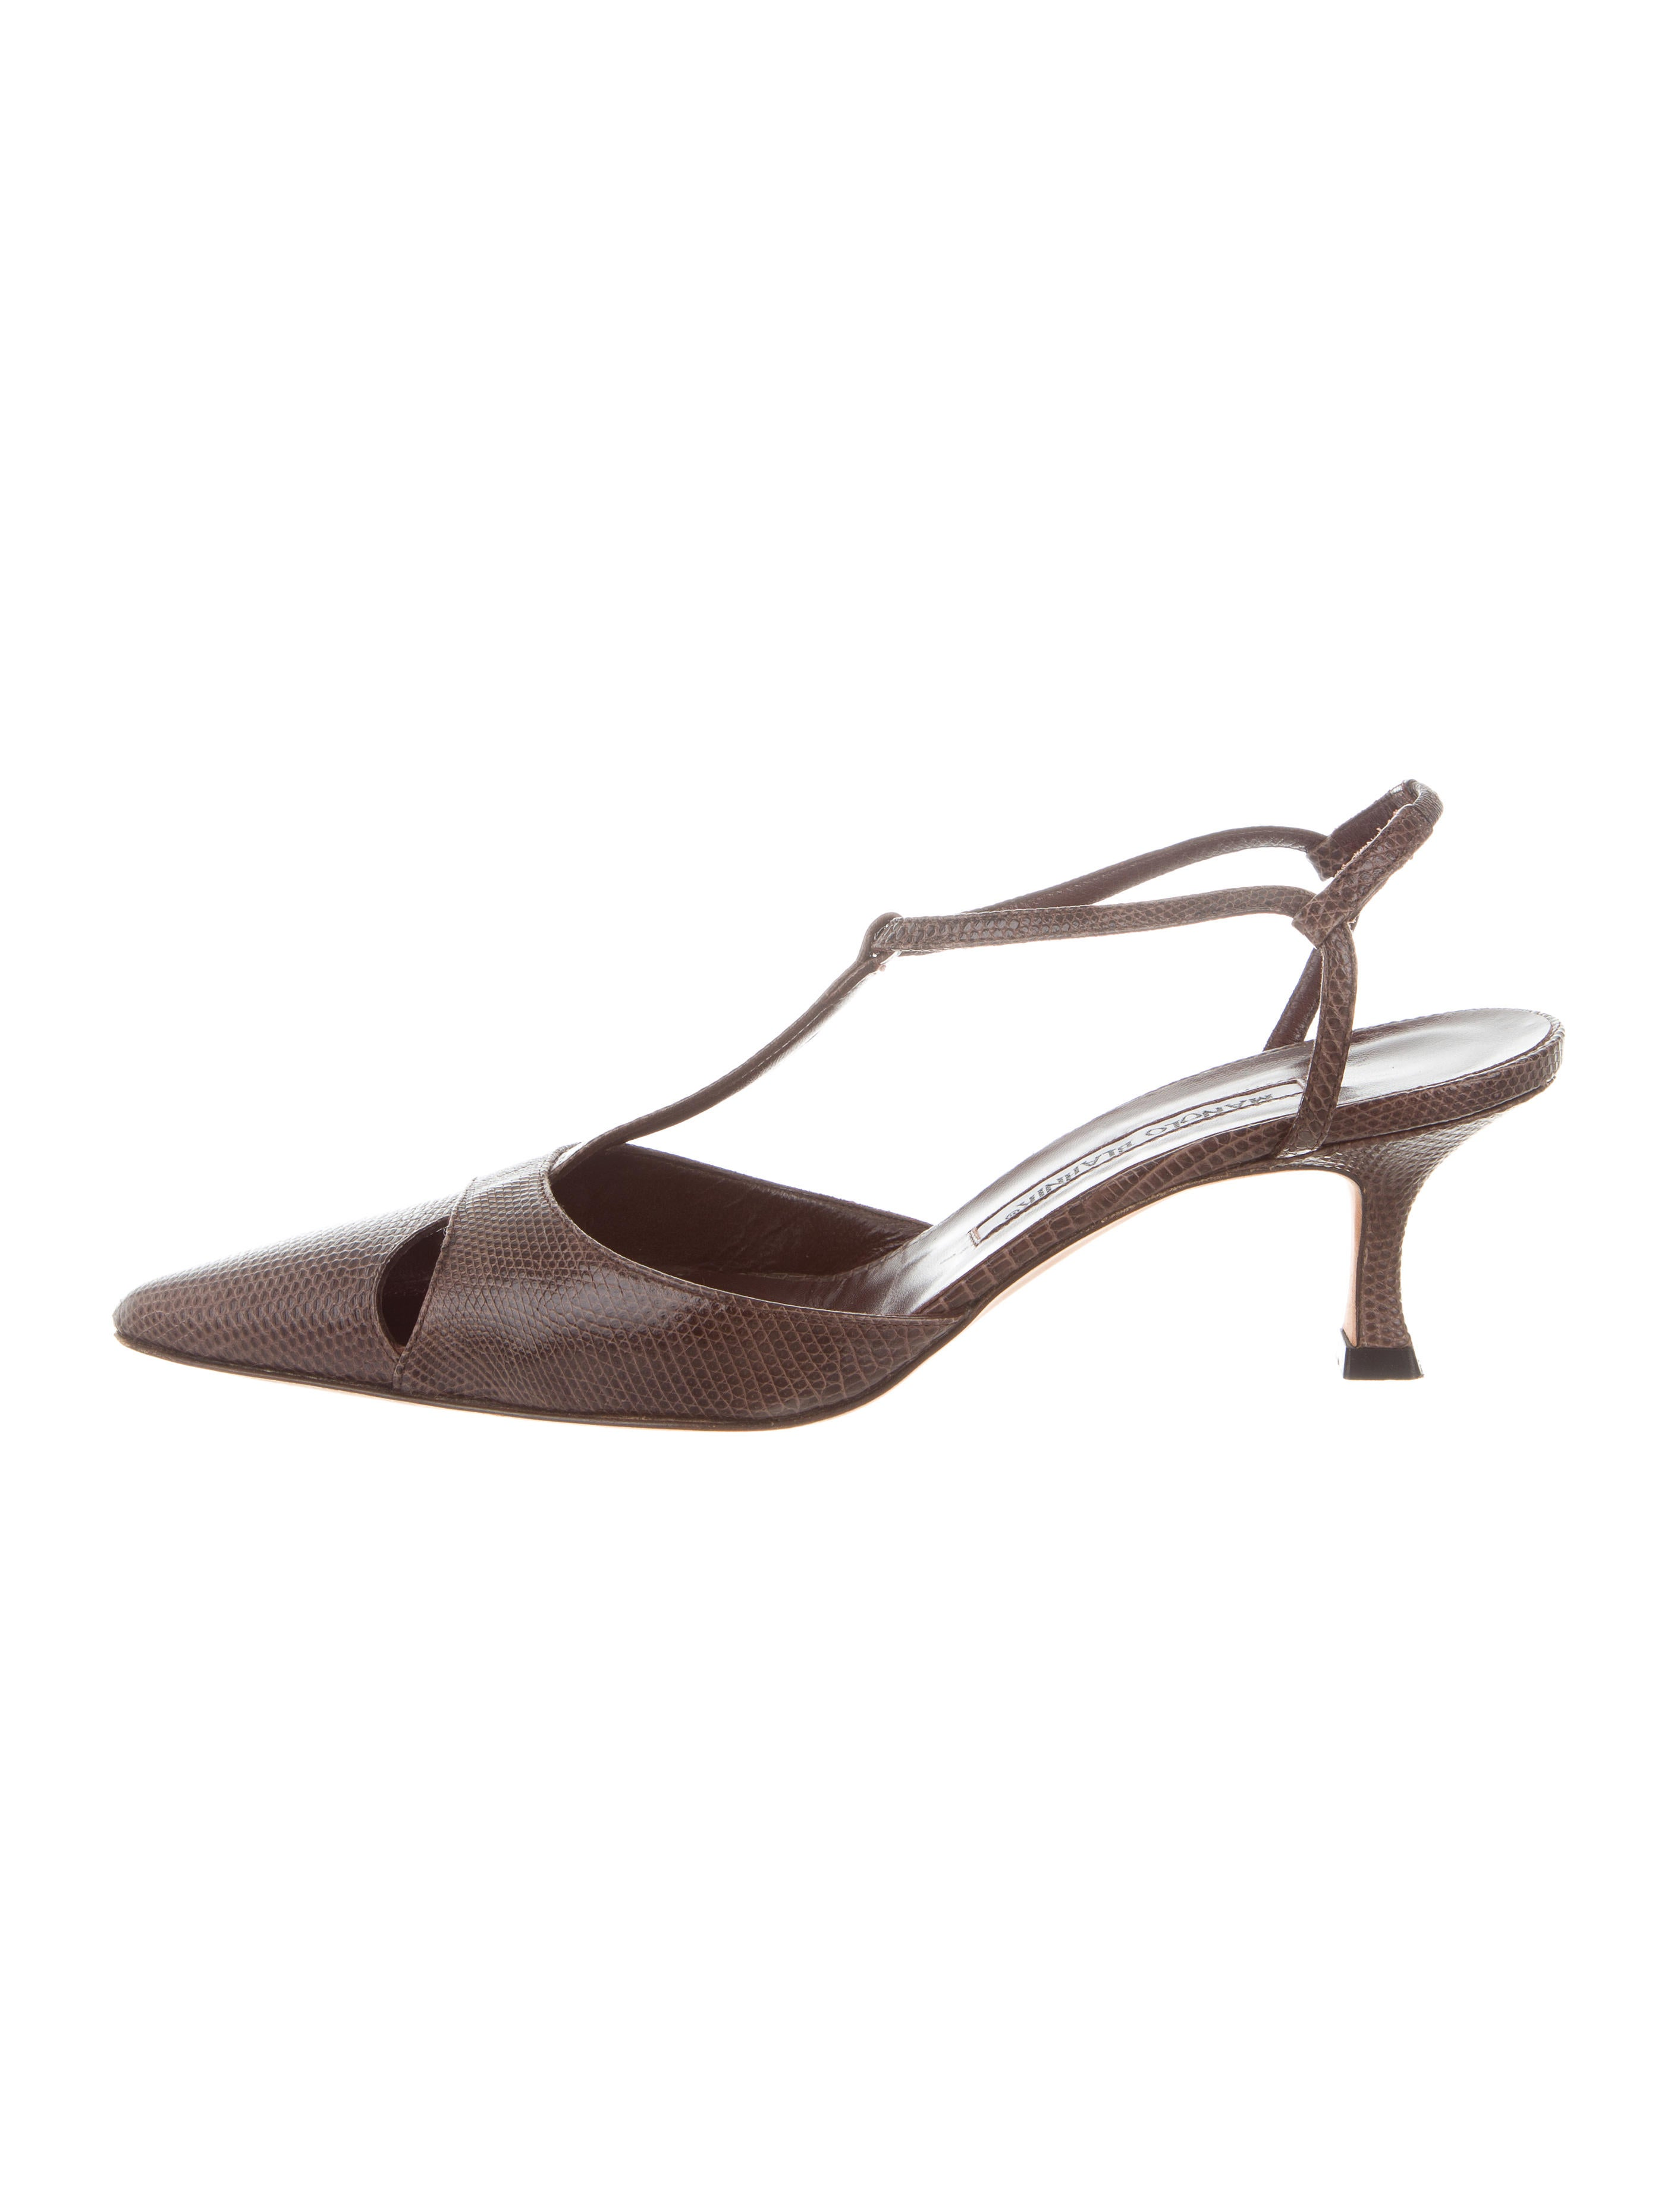 cheap sale real Manolo Blahnik Lizard Pointed-Toe Pumps discount online get to buy cheap price buy cheap low shipping pay with visa cheap price slUigTwX